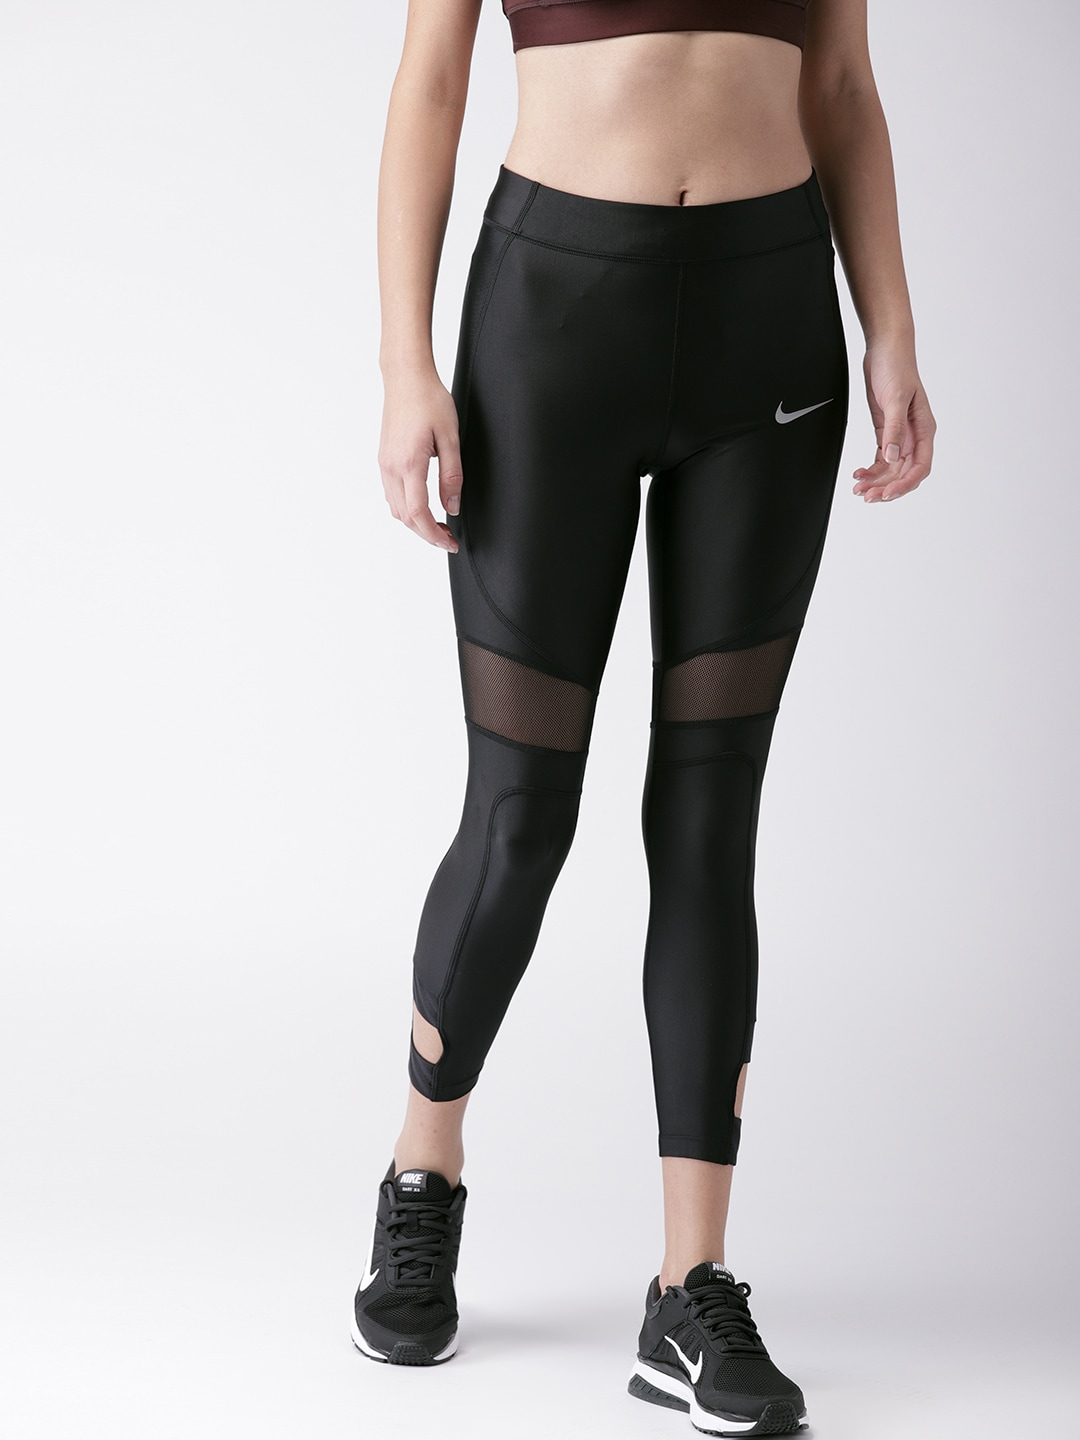 on sale ca992 52c89 Nike Bat Tights Jackets - Buy Nike Bat Tights Jackets online in India